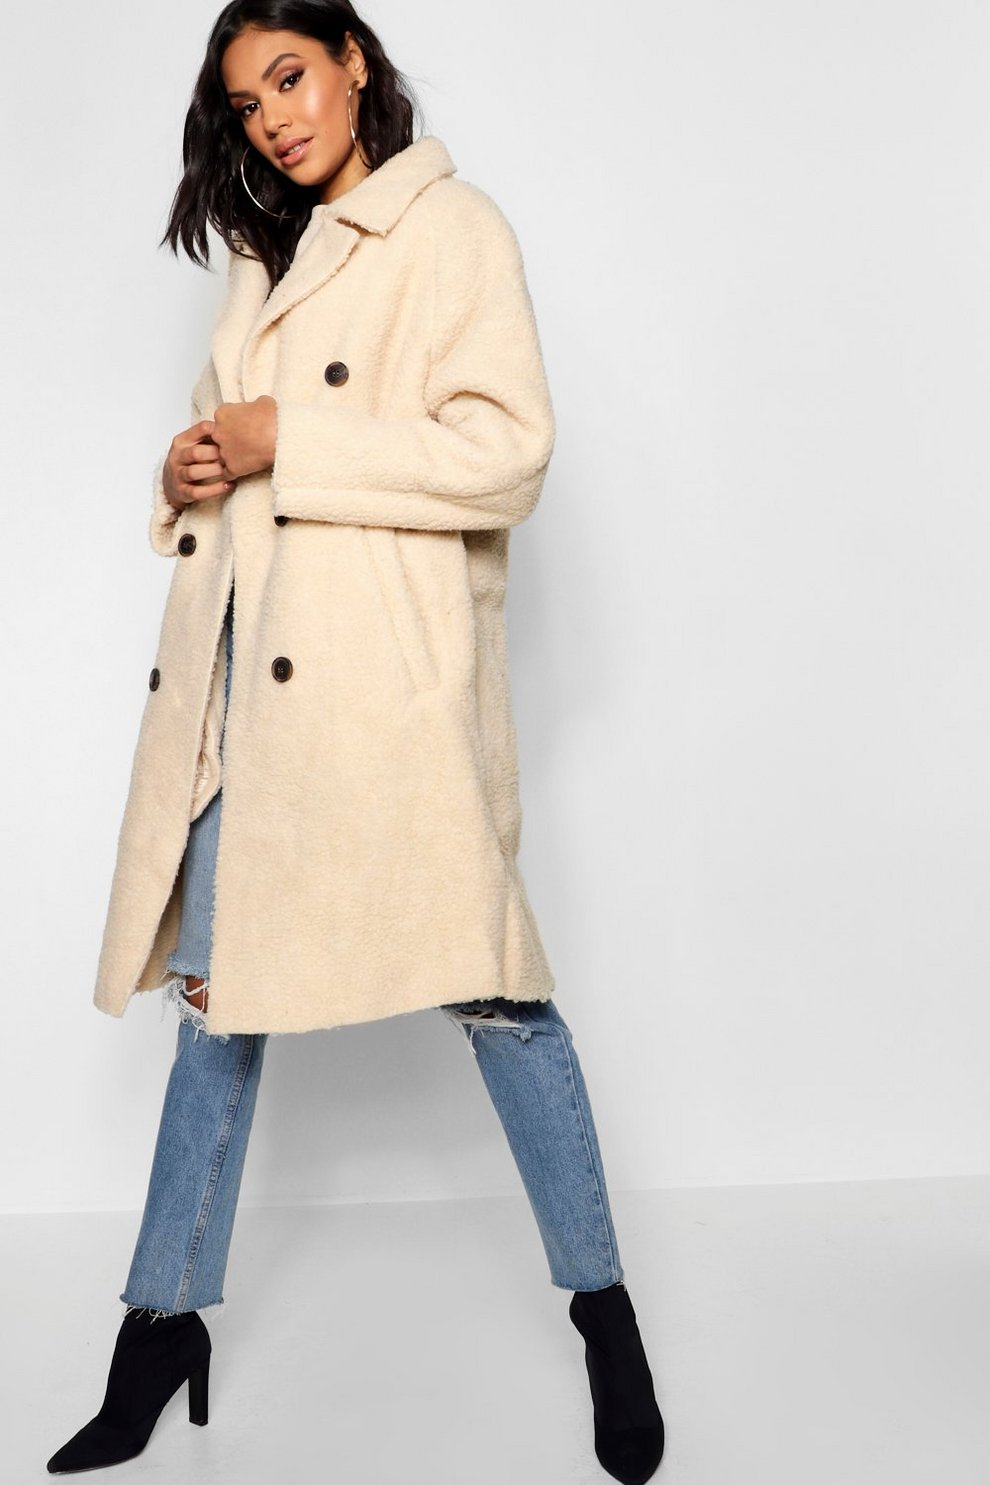 cb18cab4ad Oversized Double Breasted Faux Fur Teddy Coat | Boohoo